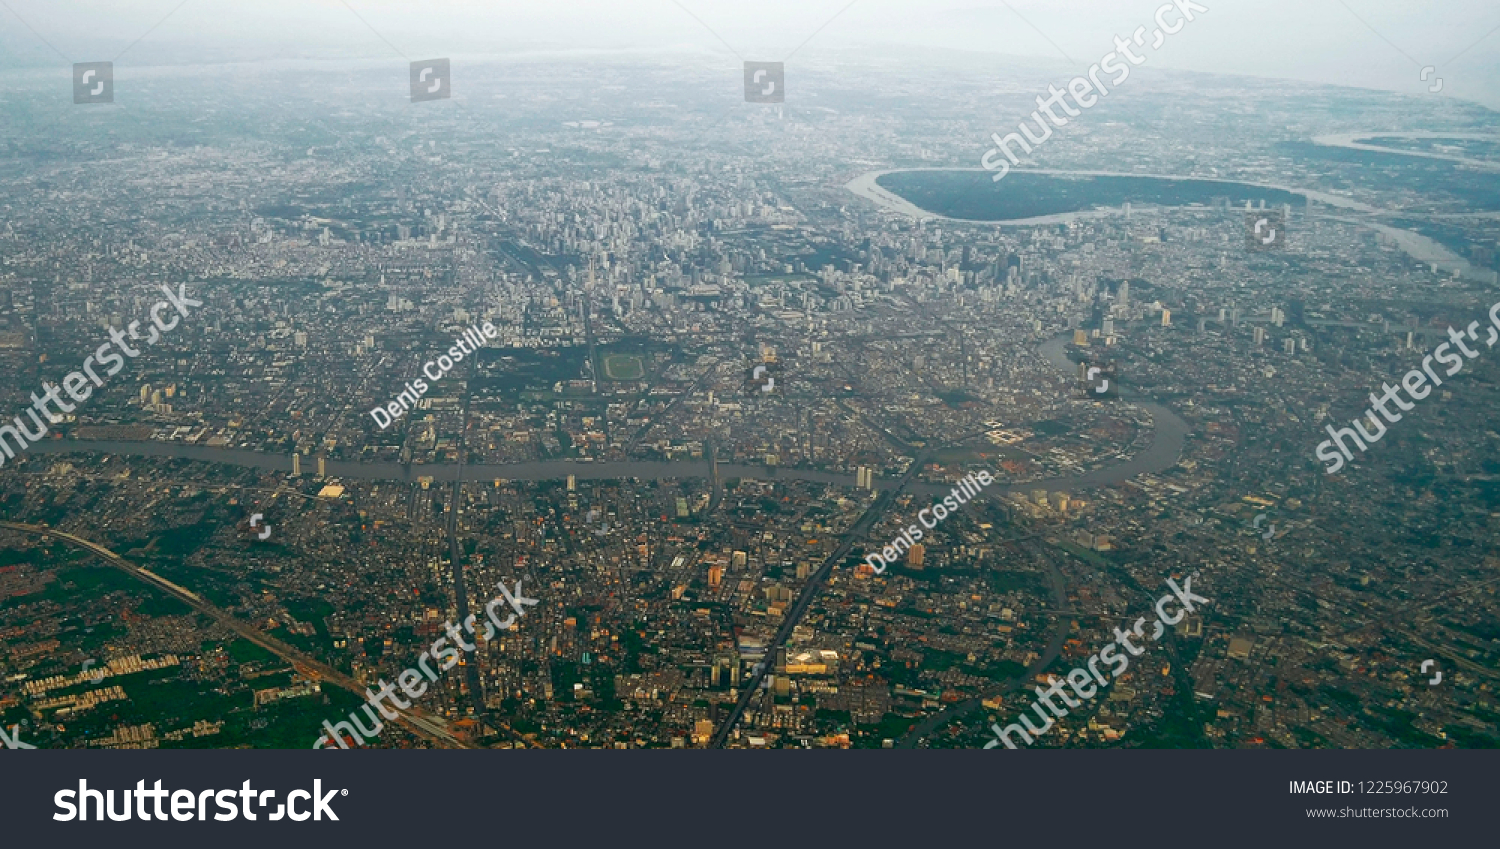 stock-photo-aerial-view-of-bangkok-with-